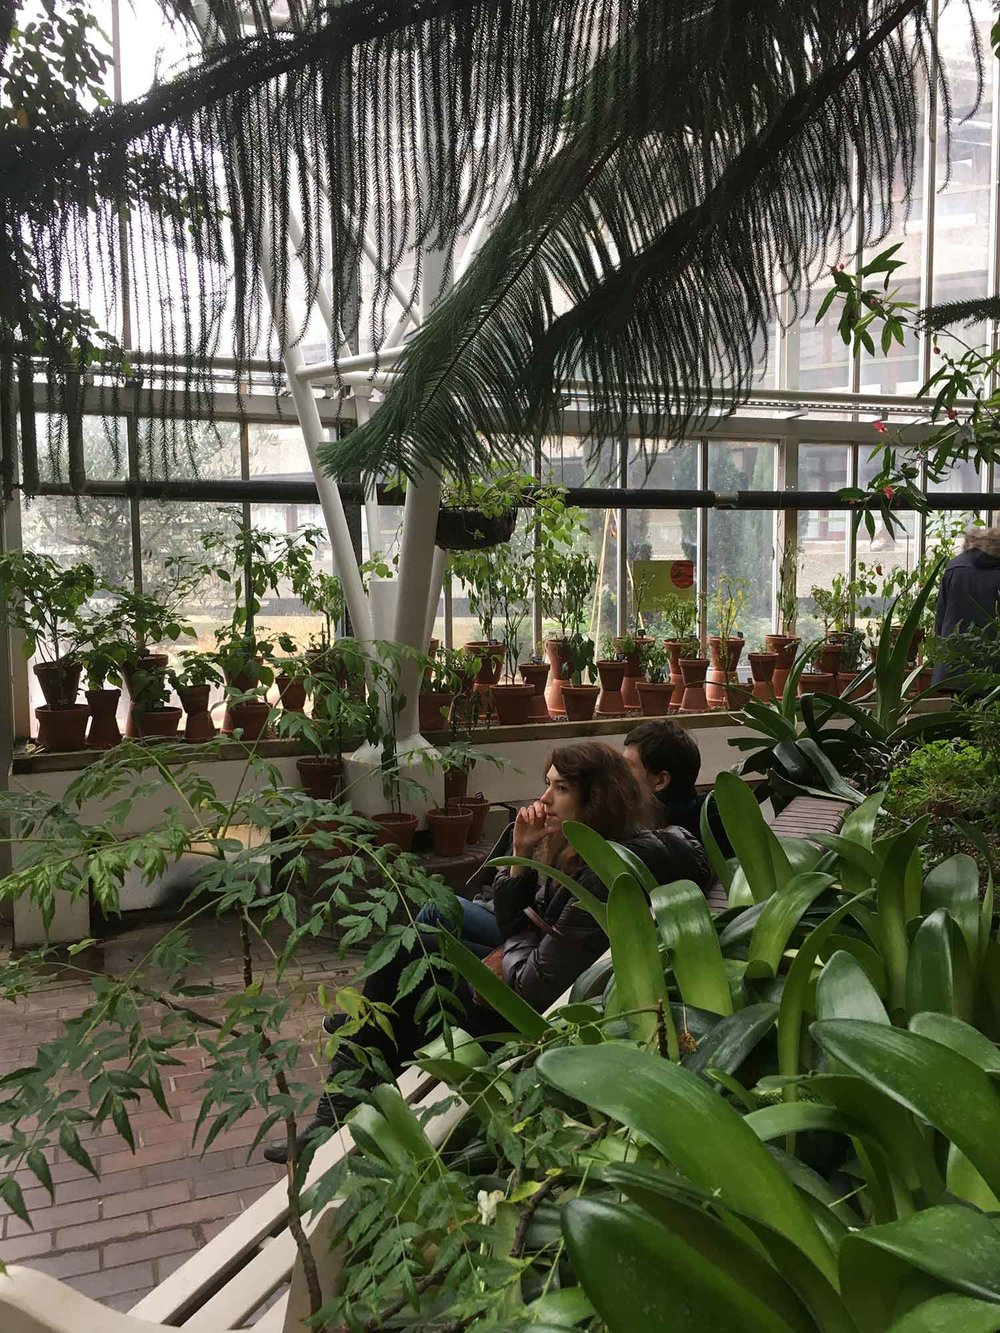 The Barbican Conservatory 5/2/2017 I would recommend visiting this tropical escapism. The cacti house is incredible!